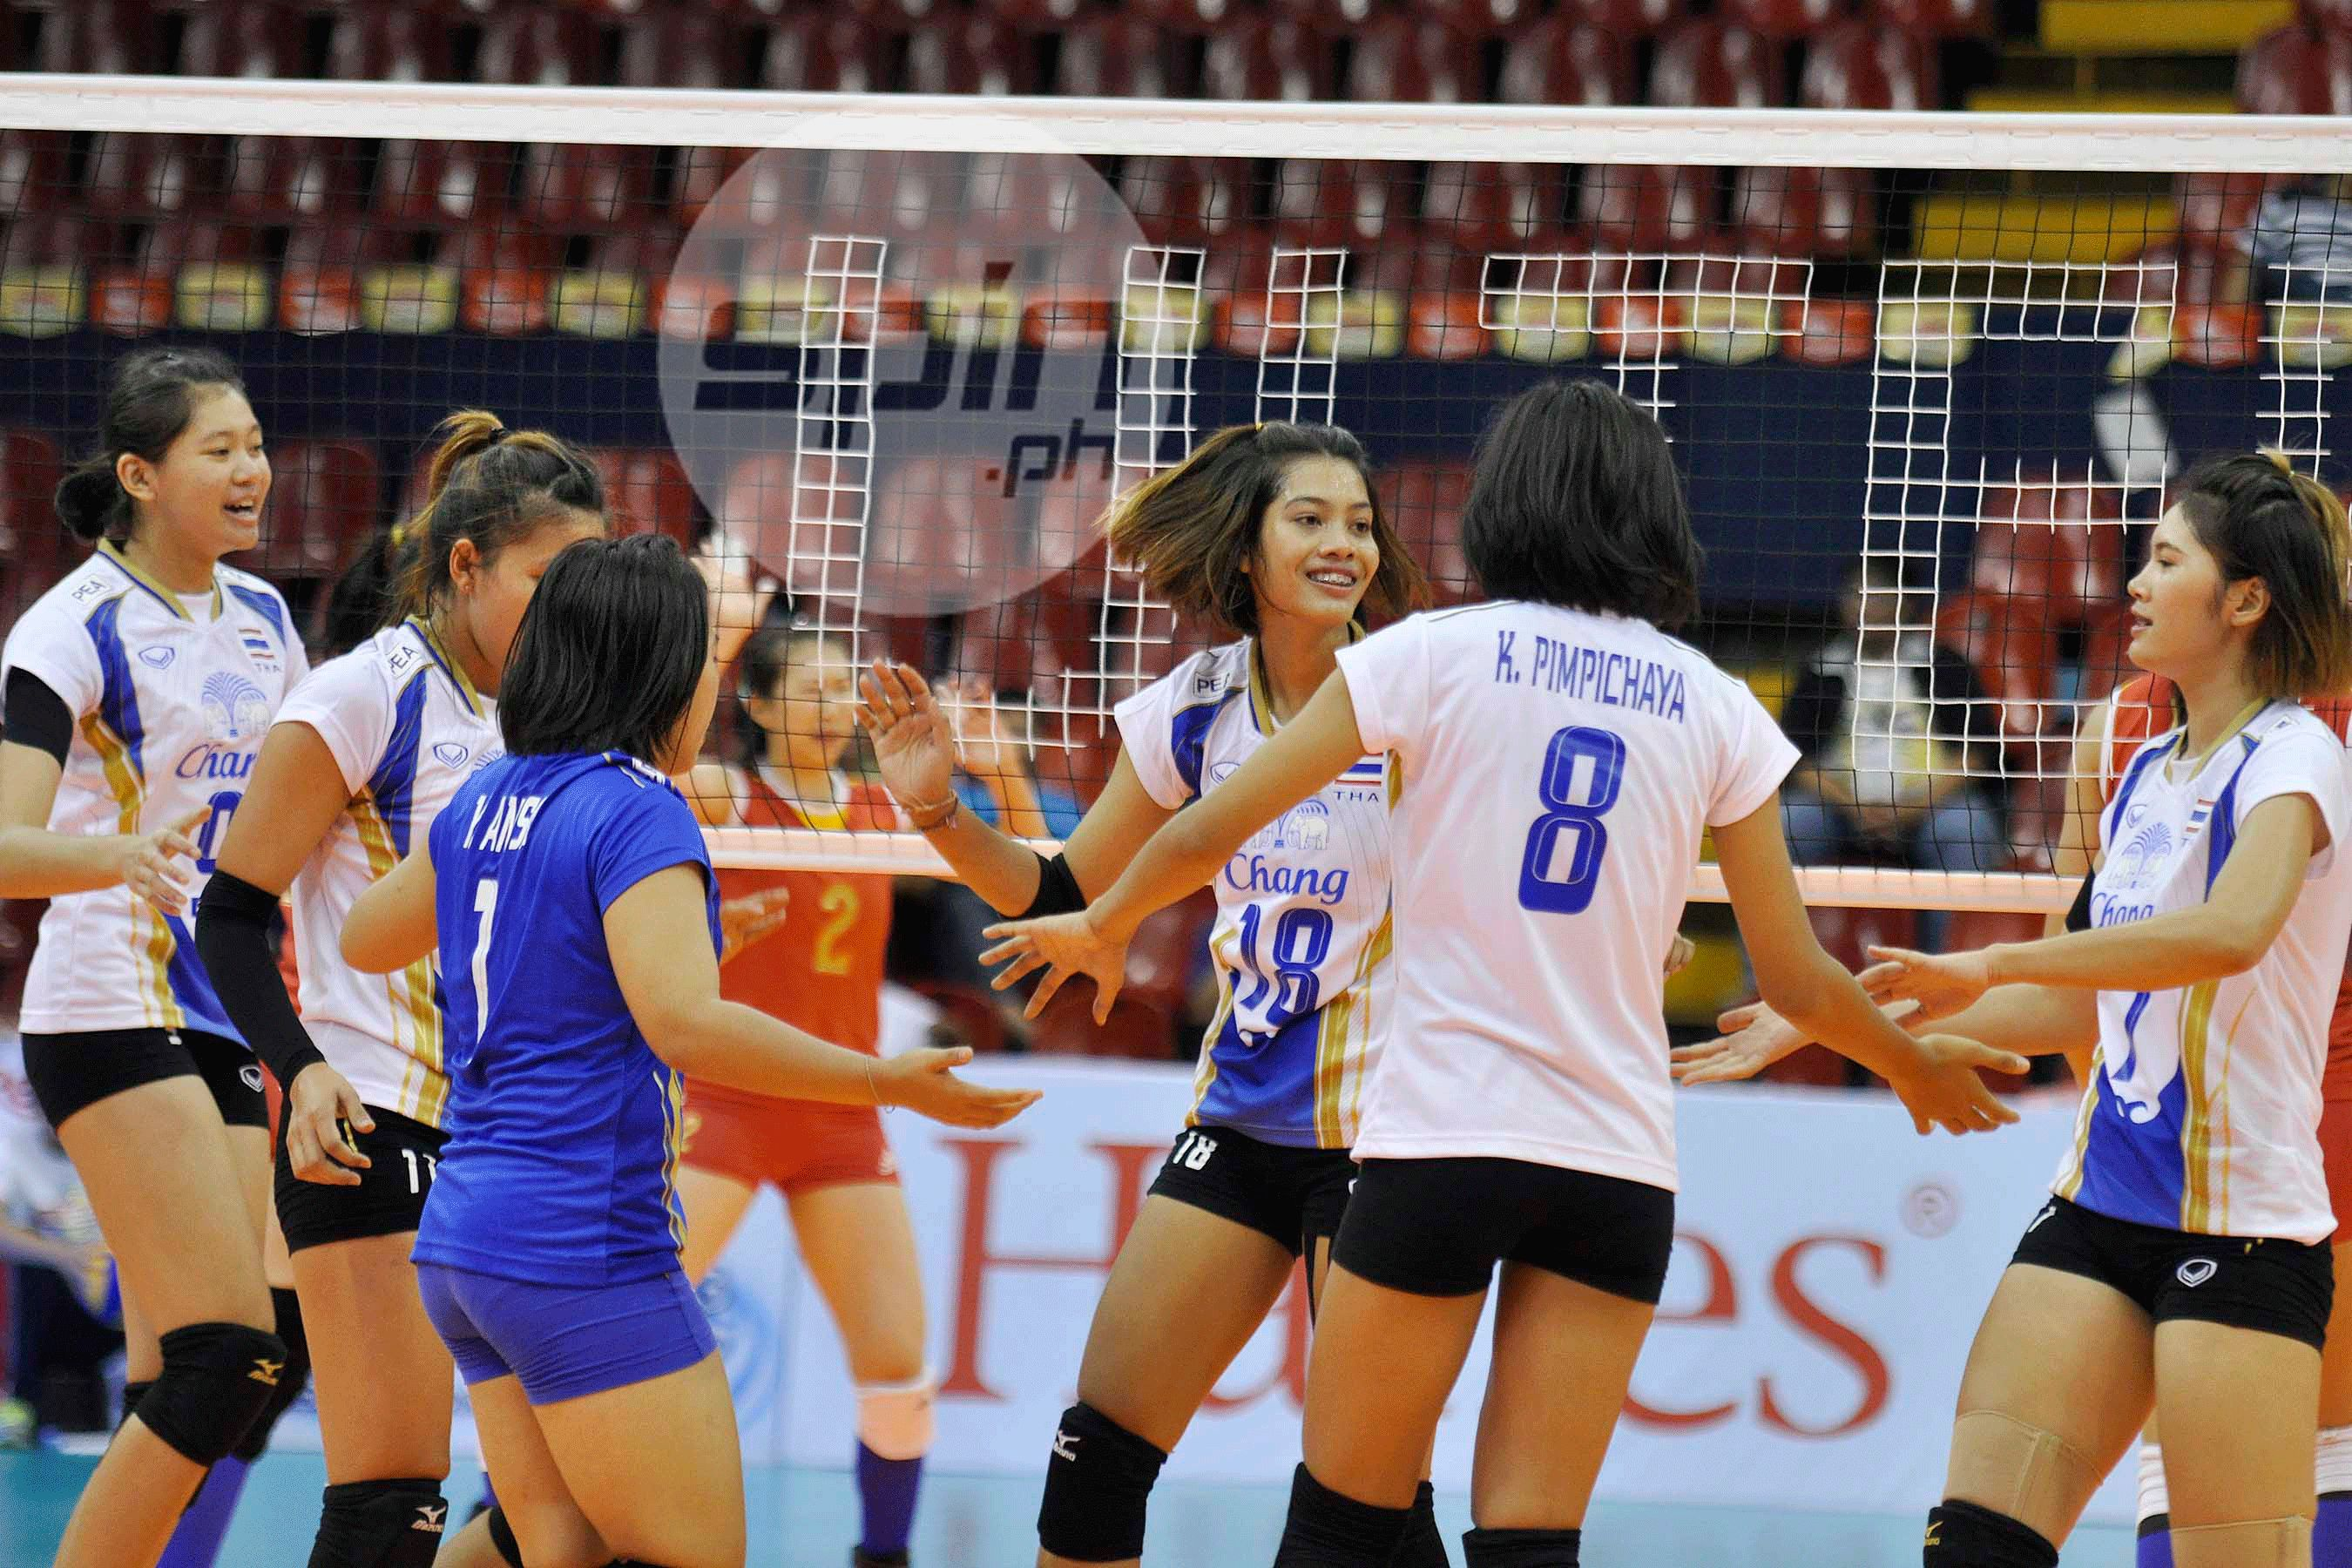 Did Thailand 'tank' match vs China to avoid clash with host Philippines? Coach responds